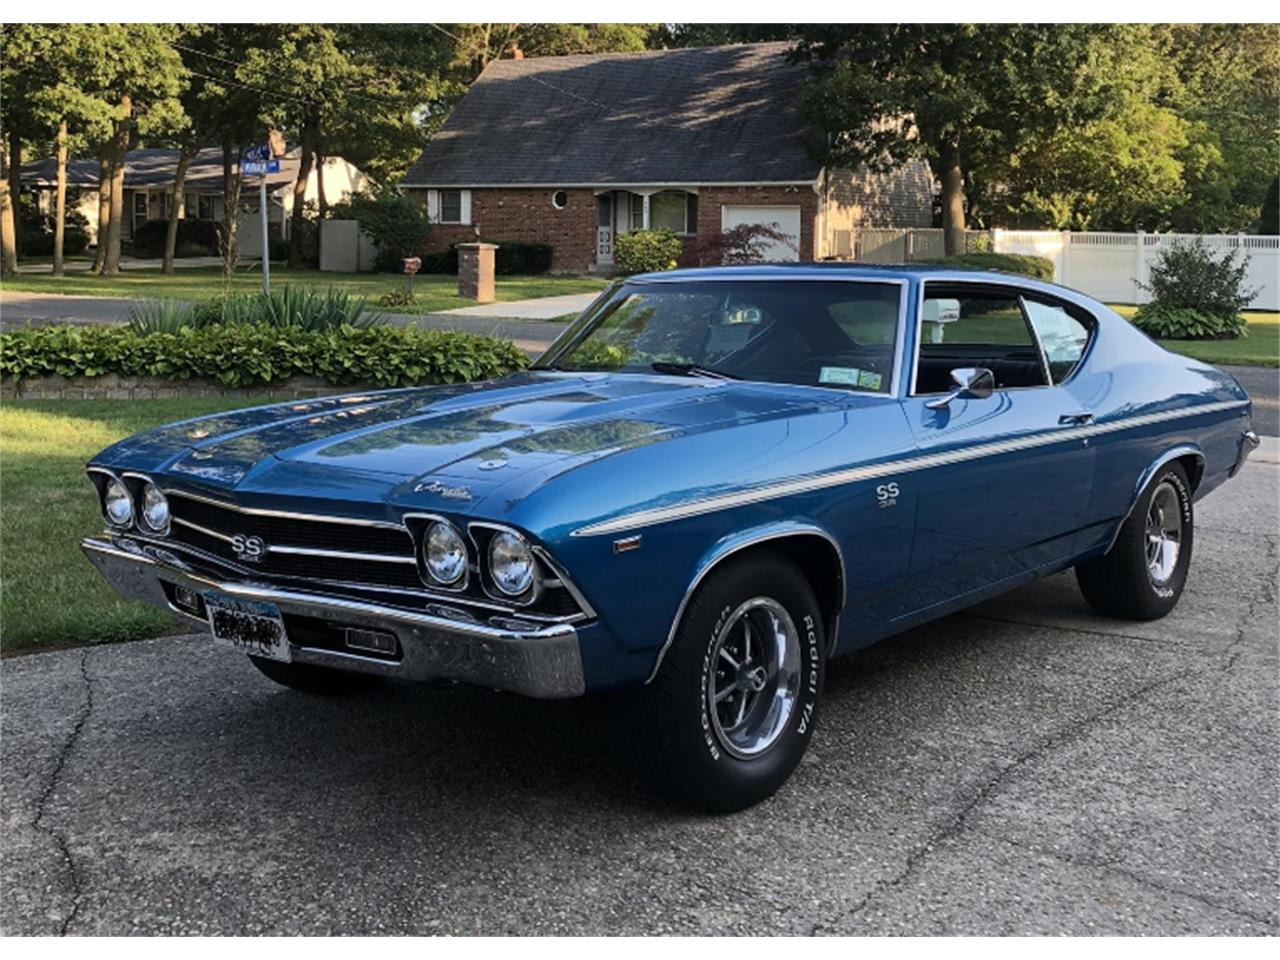 New Chevelle Ss >> 1969 Chevrolet Chevelle Ss For Sale Classiccars Com Cc 1144436